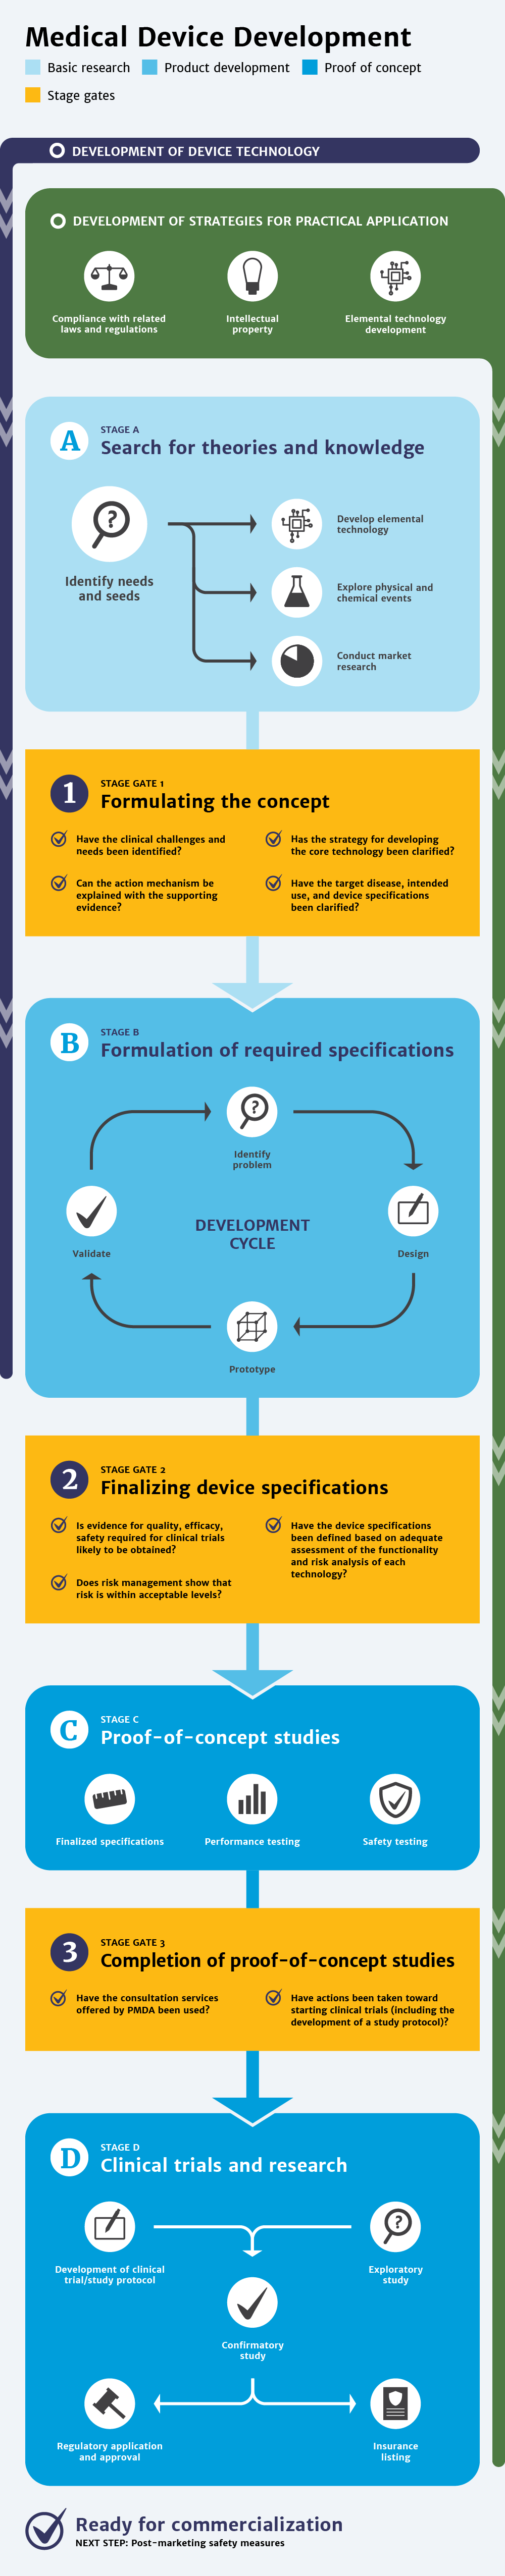 Infographic: Medical device development